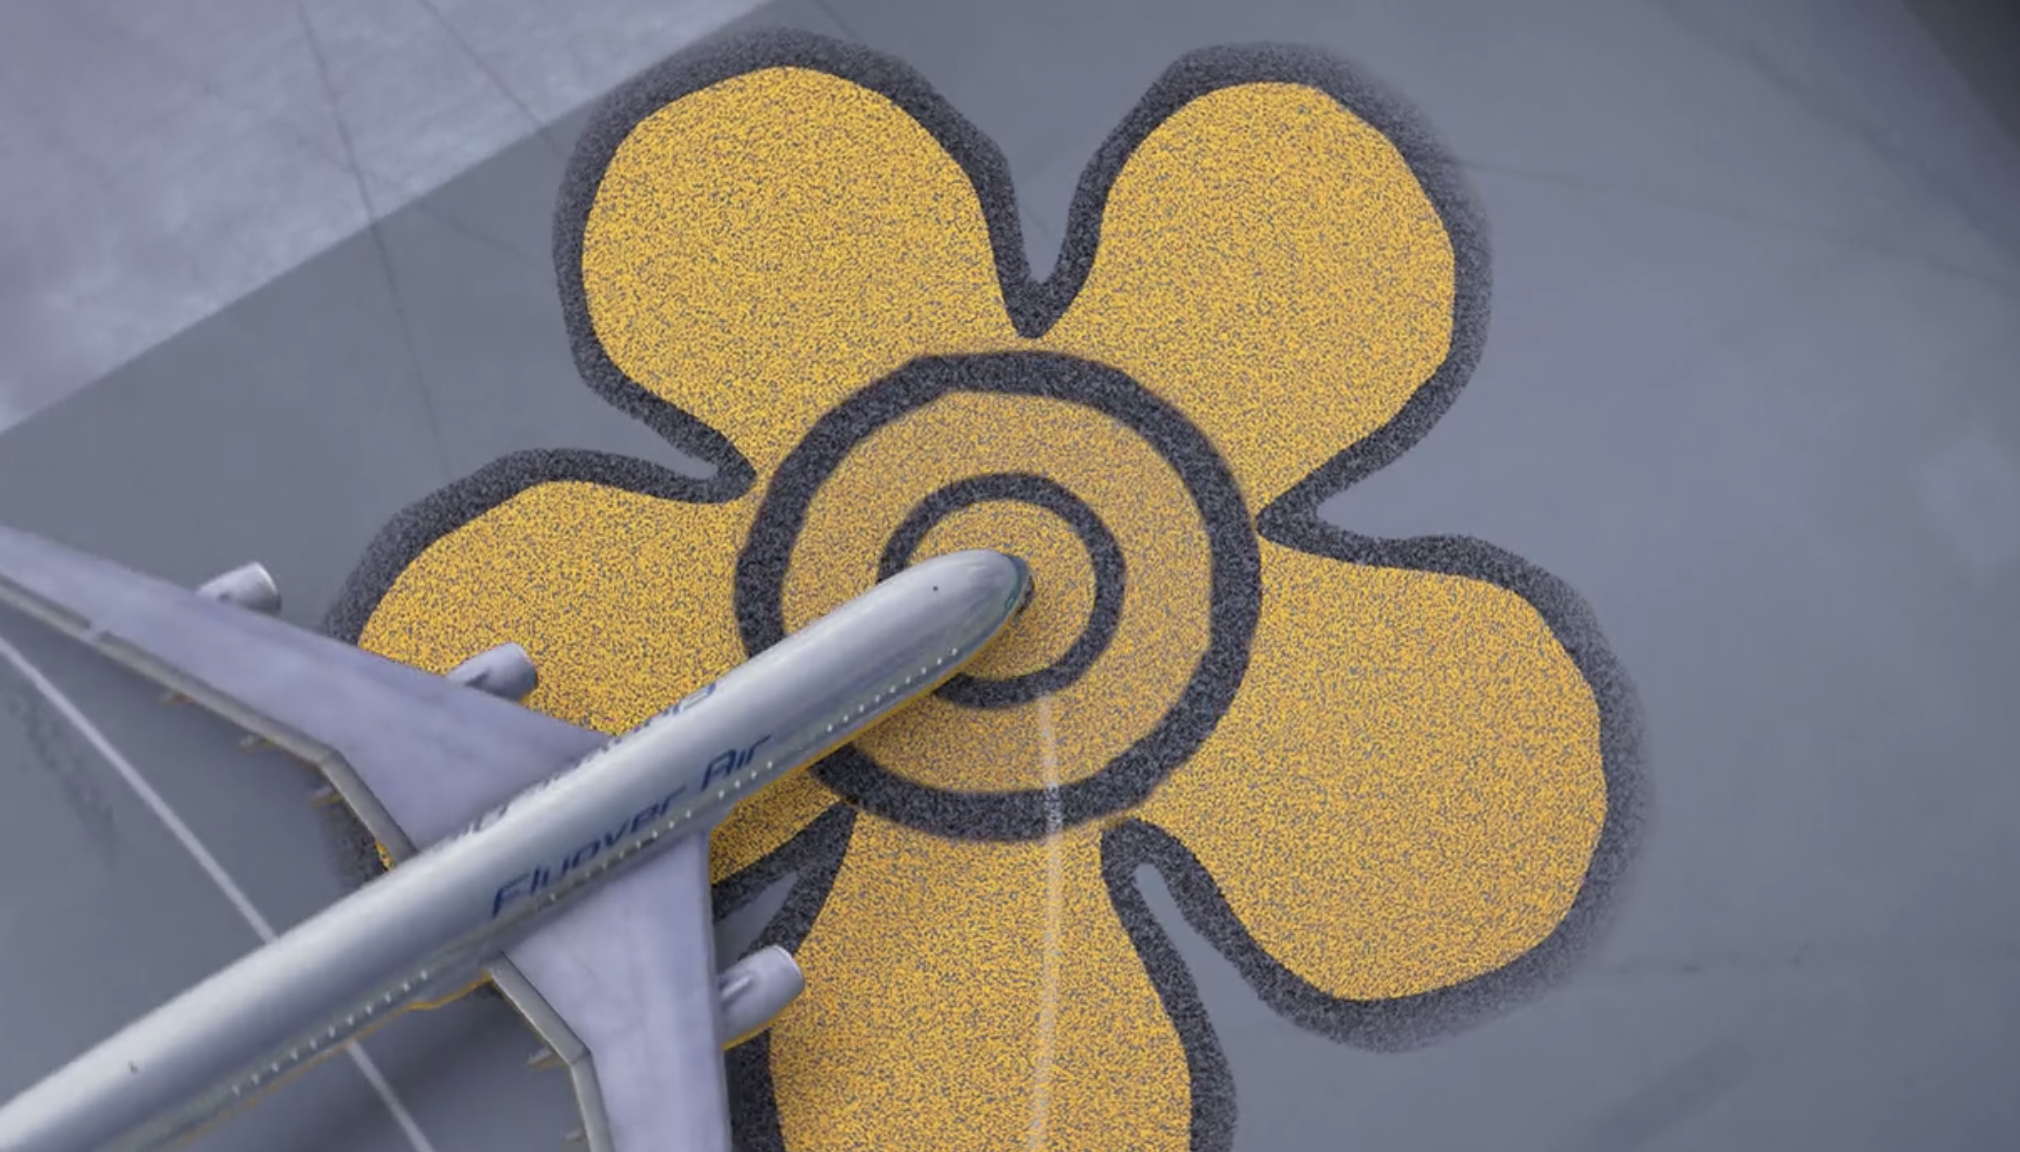 the plane lands on the flower